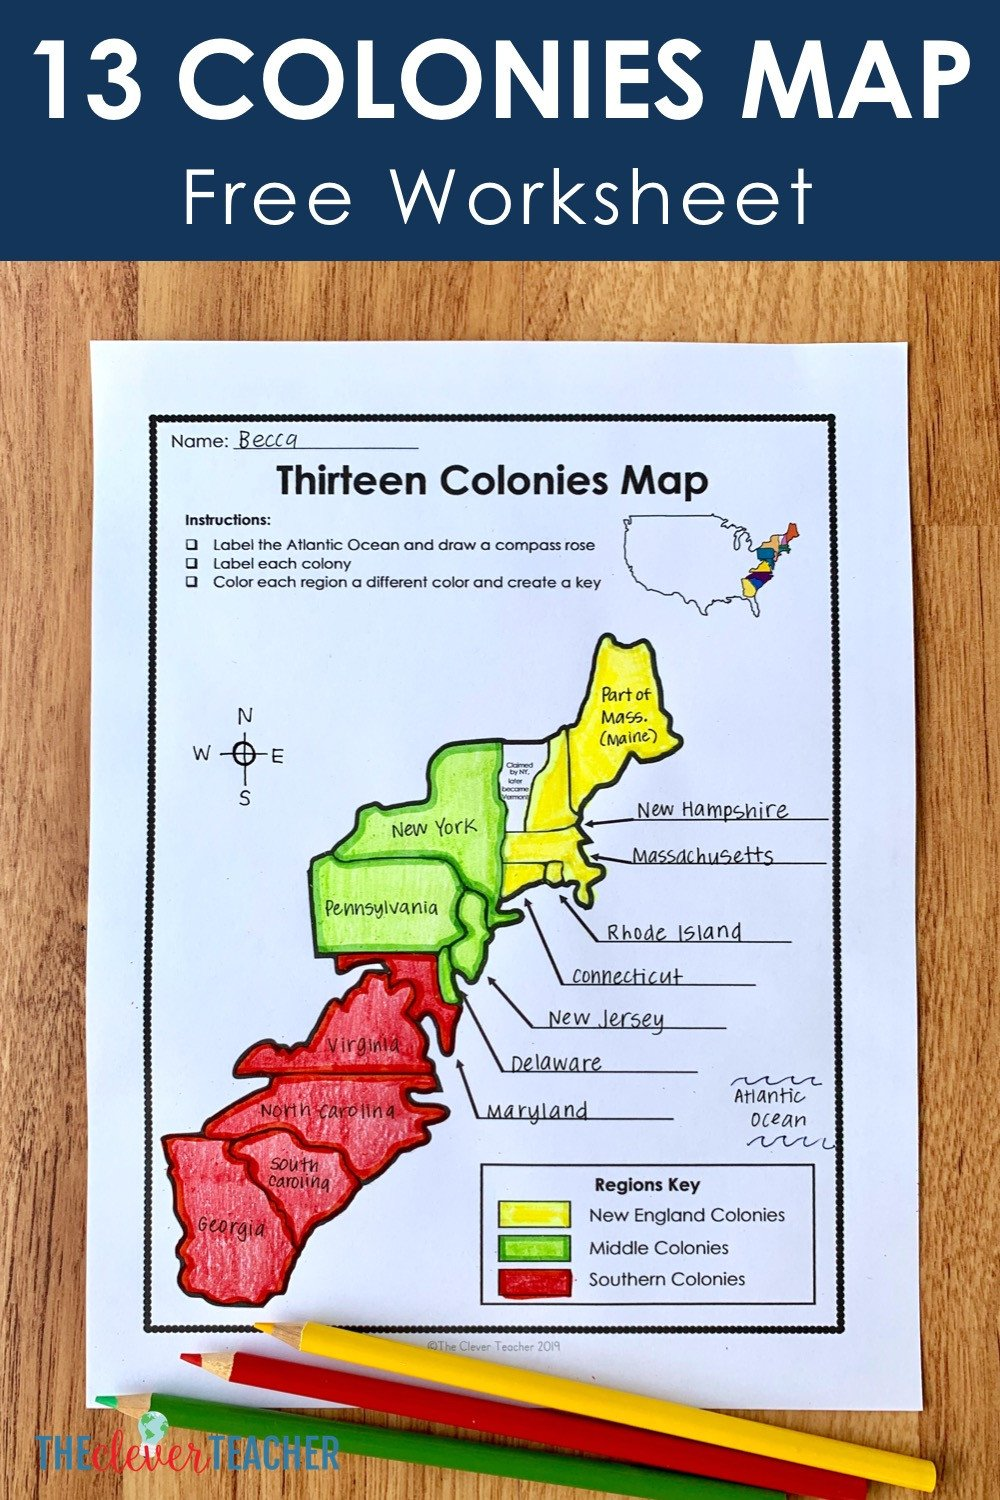 Free Us History Worksheets 13 Colonies Free Map Worksheet and Lesson for Students